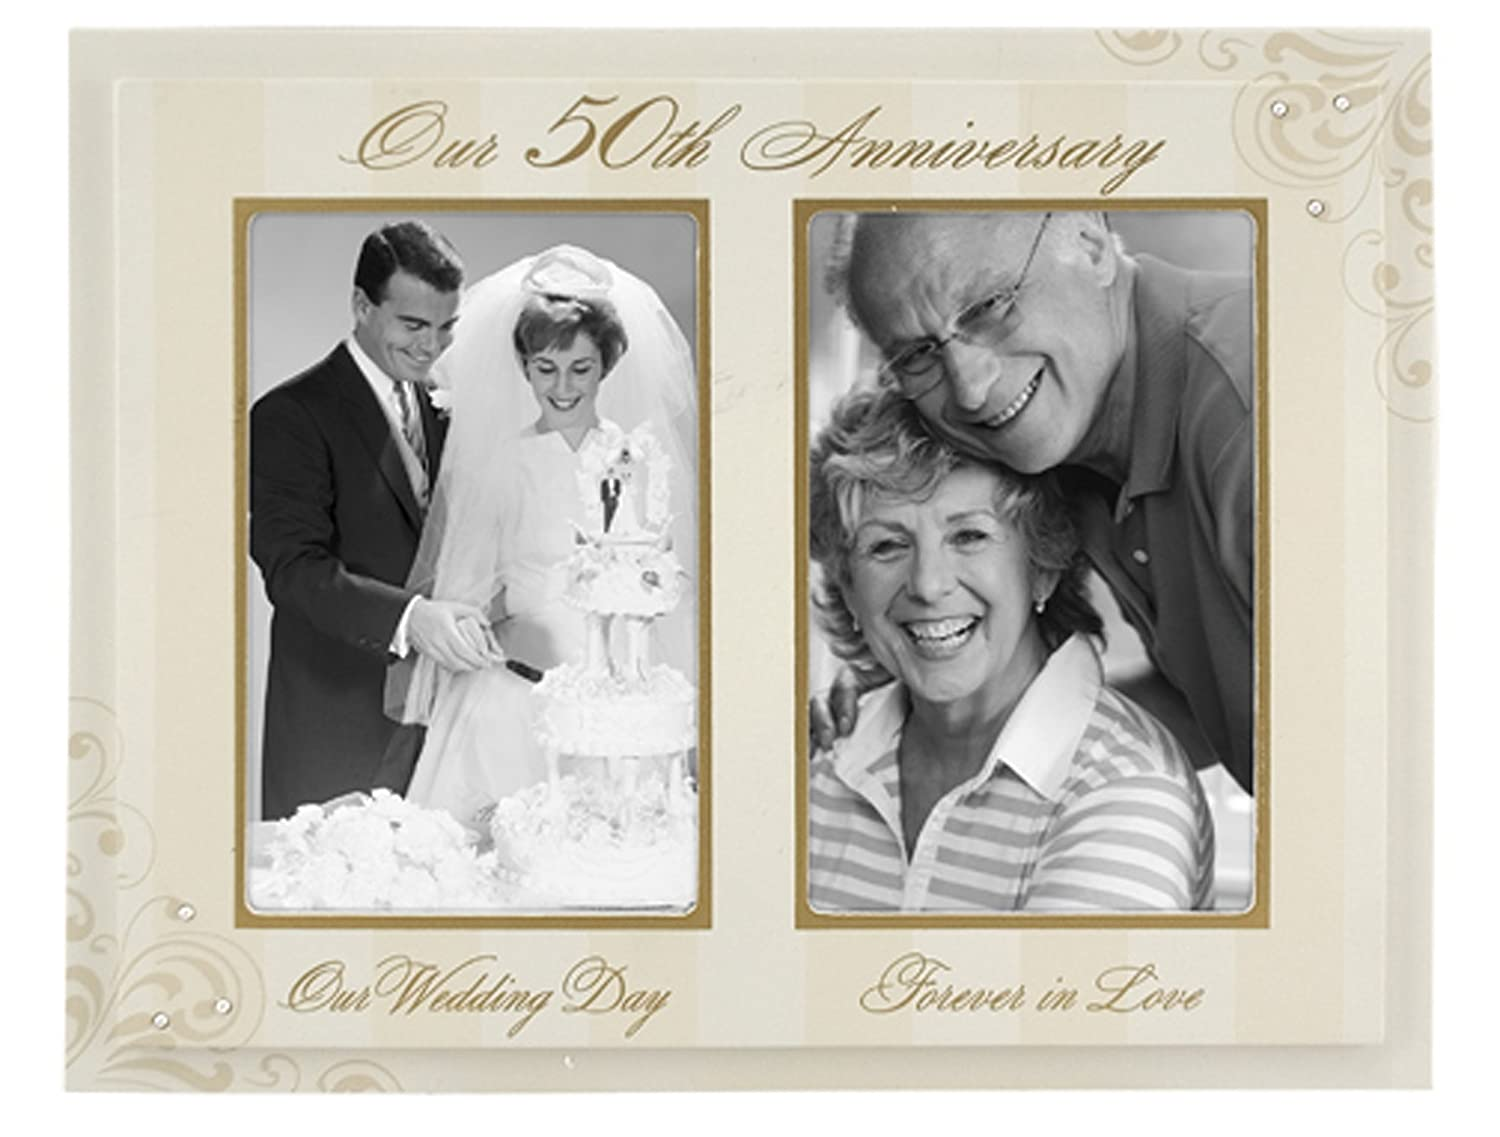 Golden Wedding Anniversary Gift Ideas For Parents : anniversary gift ideas for parents 50th wedding anniversary gift ideas ...